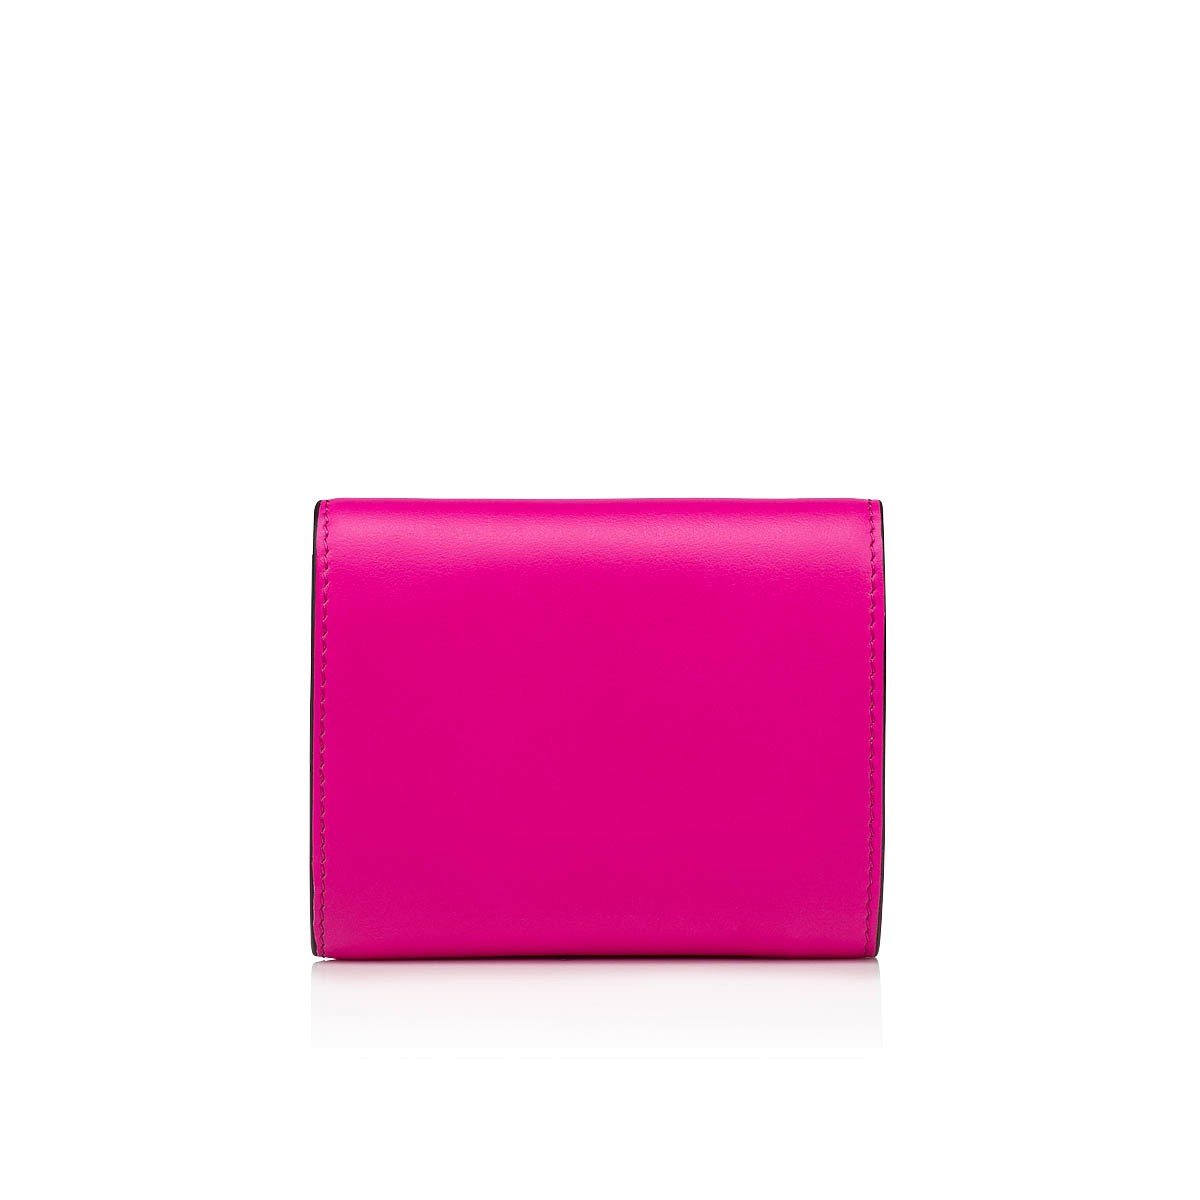 Small Leather Goods - Loubigaga Mini Wallet - Christian Louboutin